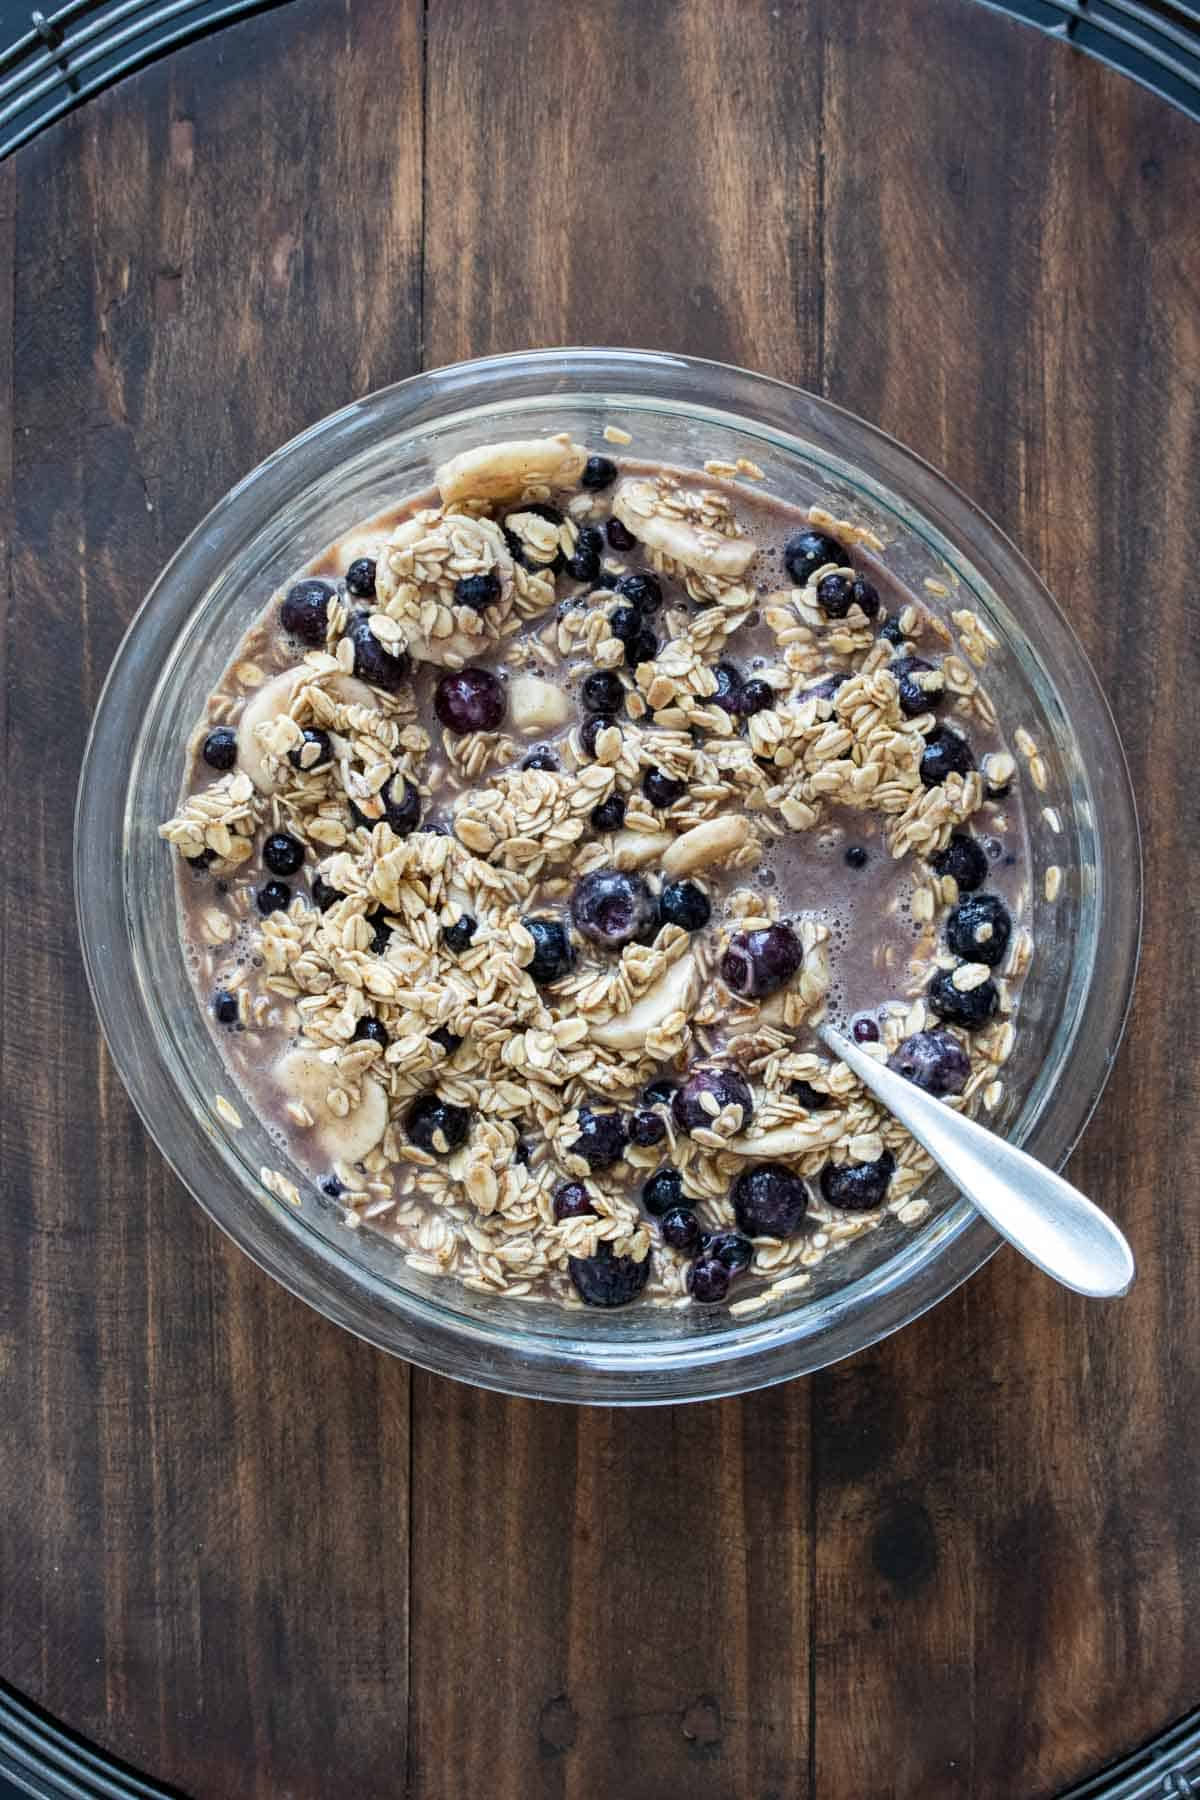 Oats, blueberries and milk in a glass bowl on a wooden surface